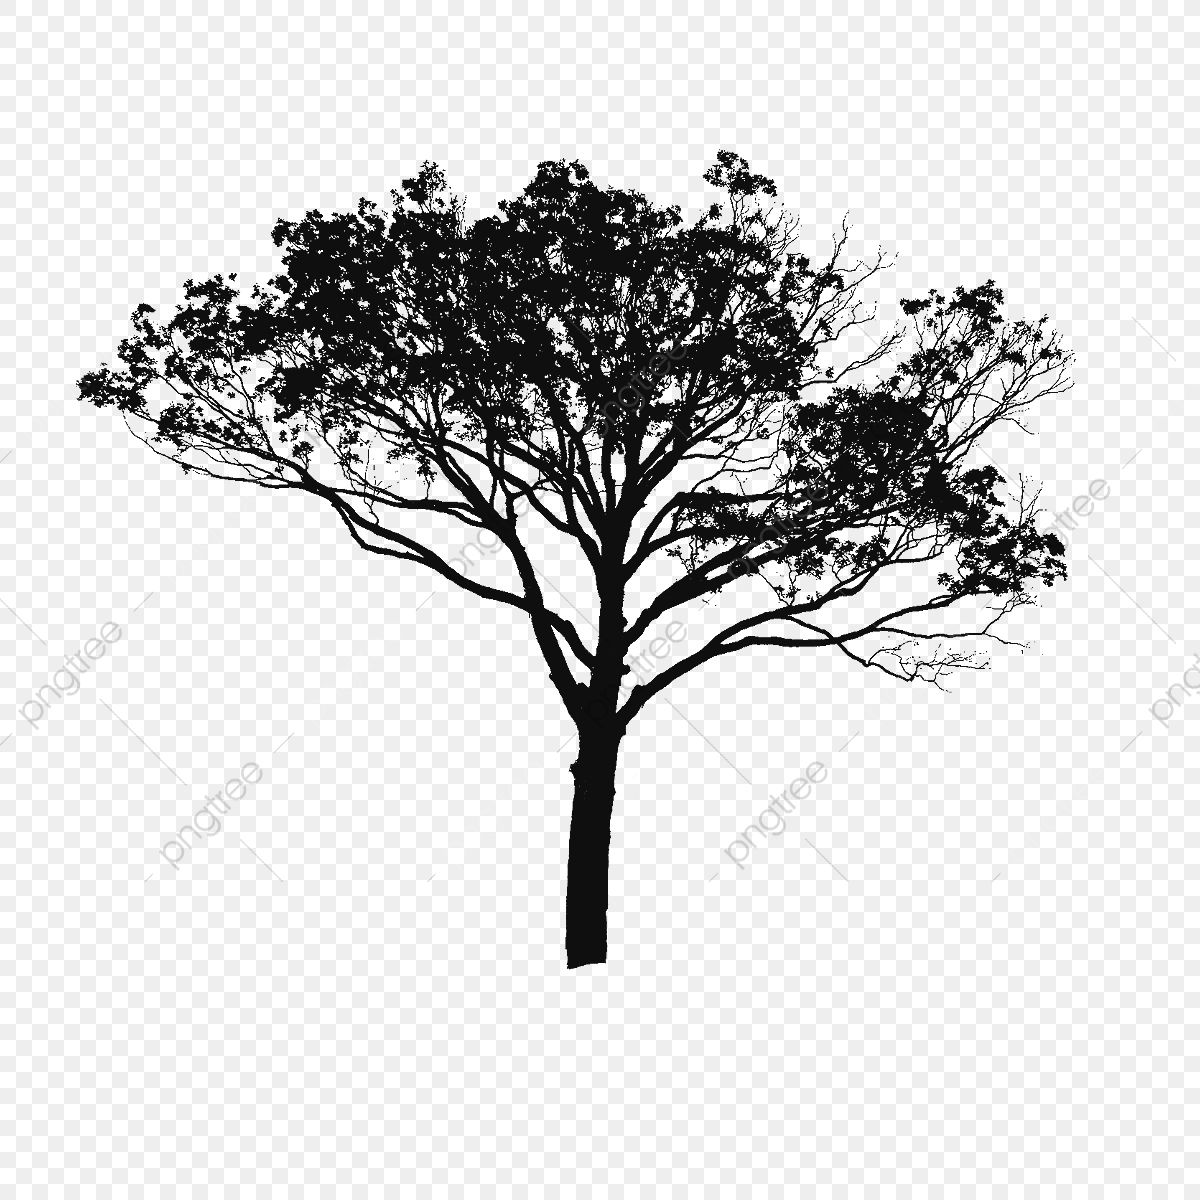 Tree Vector Black And White Tree Vector Clipart Tree Clipart Tree Png Vector Png Transparent Clipart Image And Psd File For Free Download Black And White Tree Black Tree Tree Photoshop